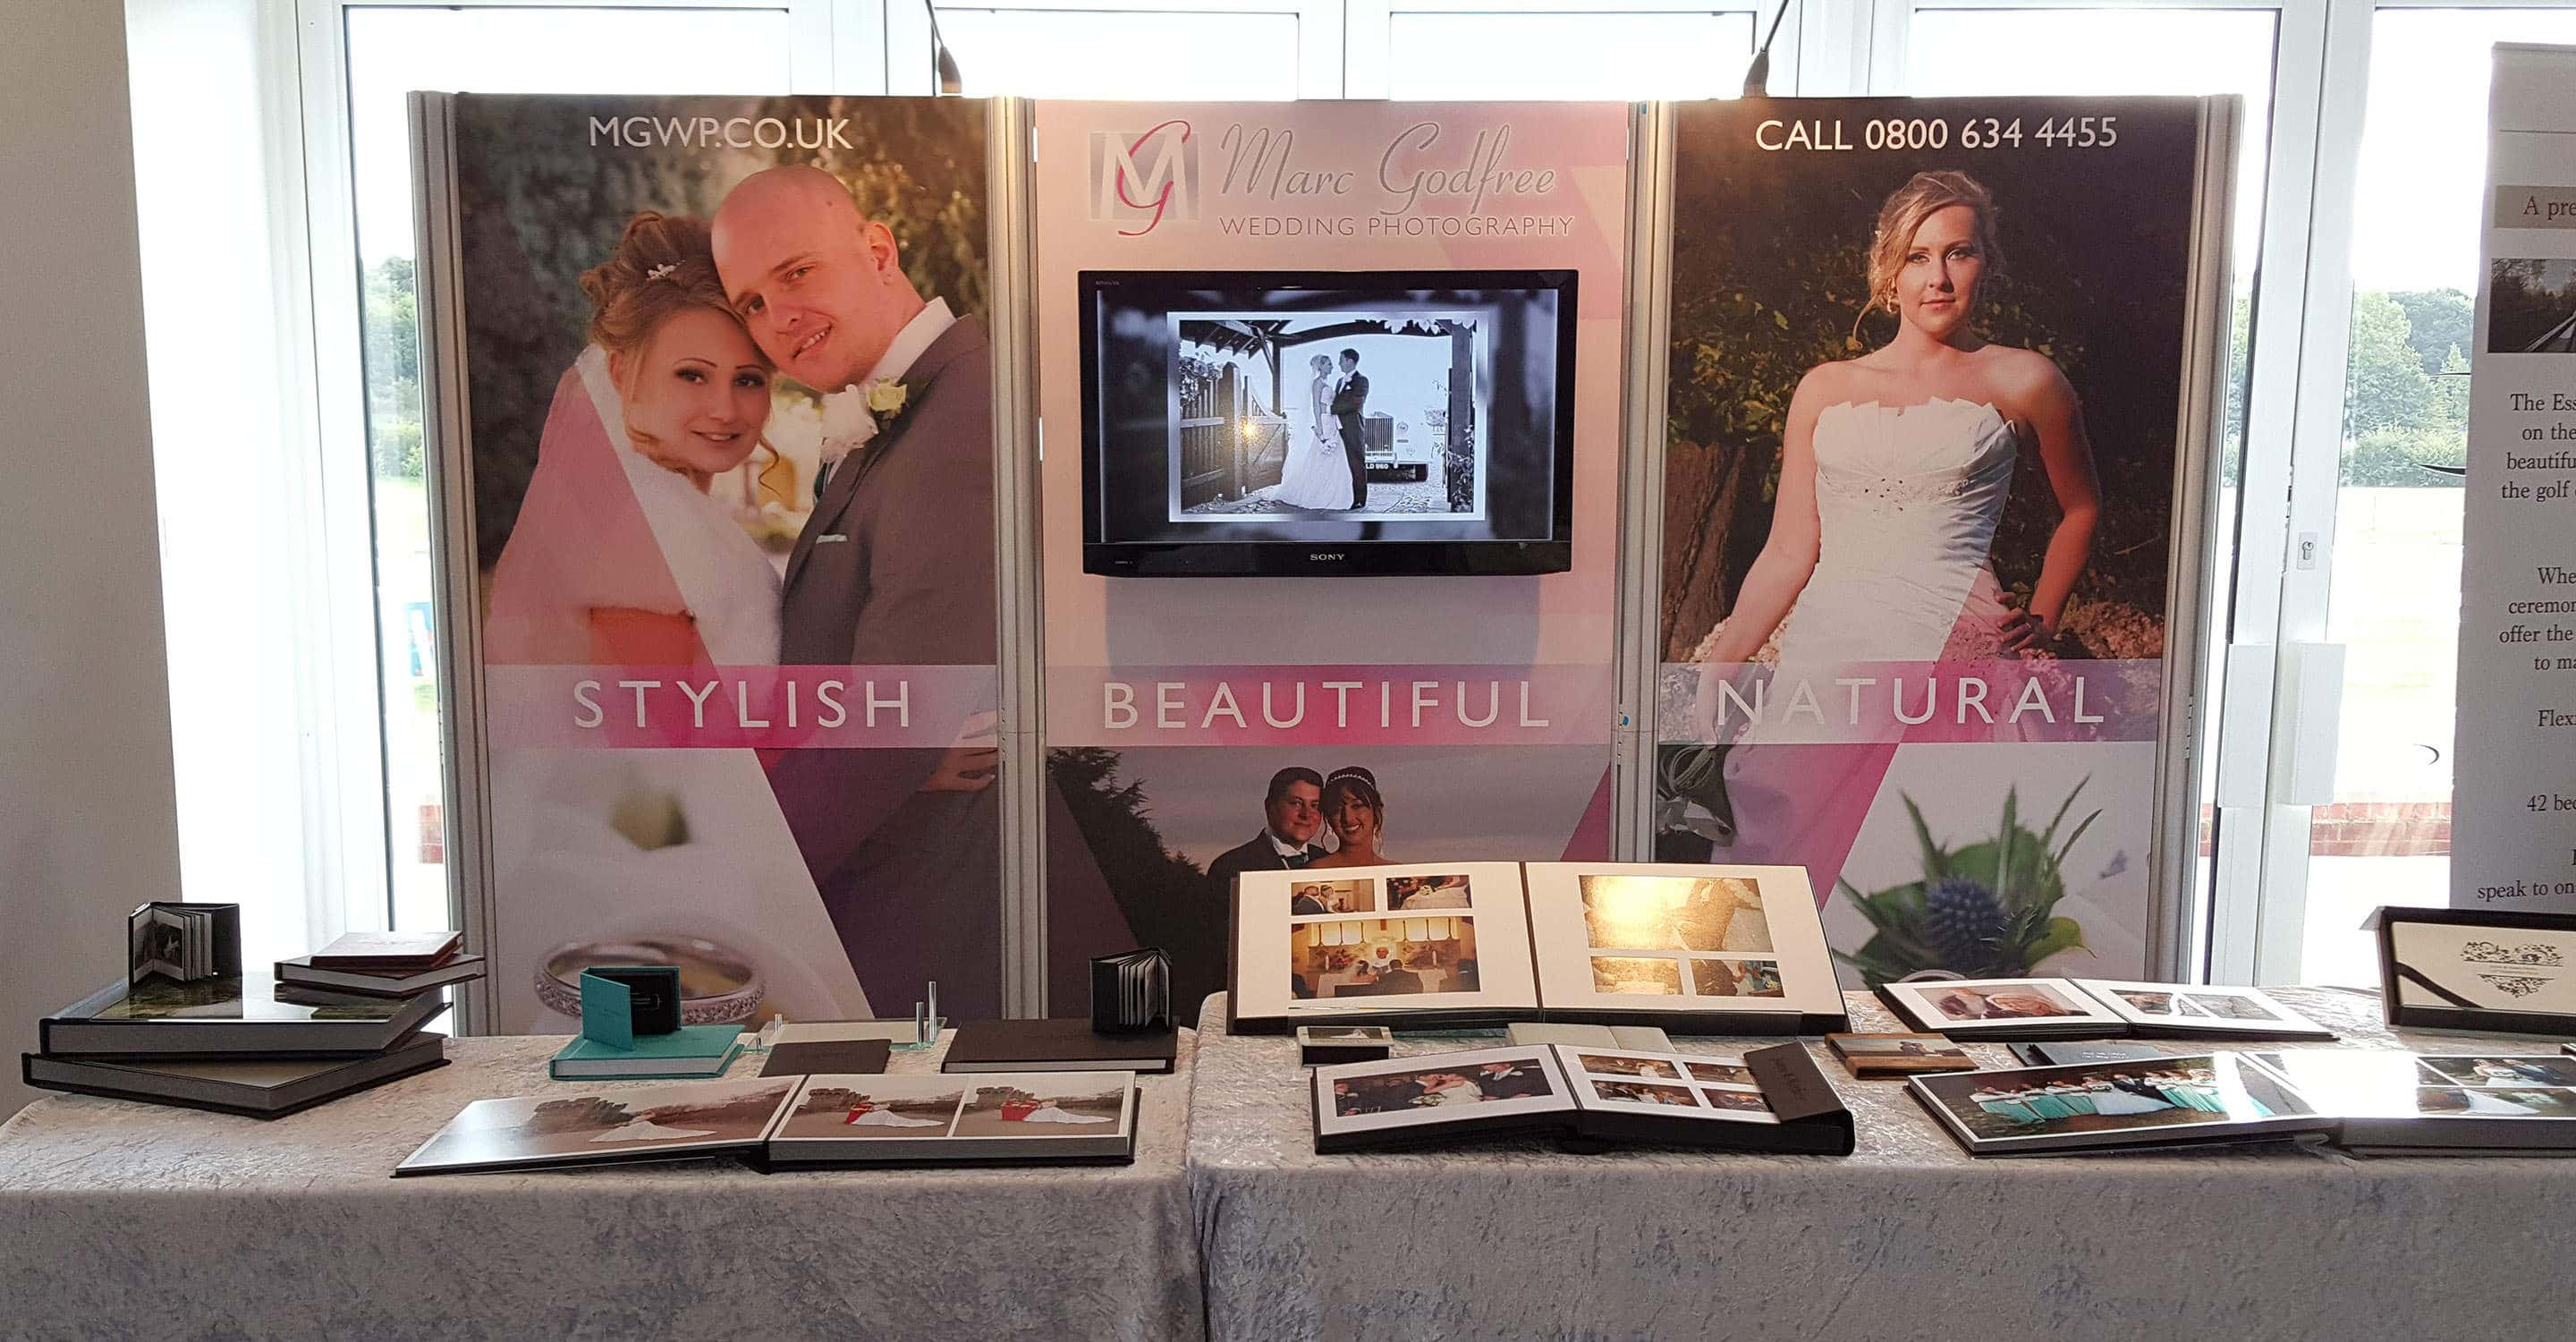 Wedding Fairs Marc Godfree Weddings